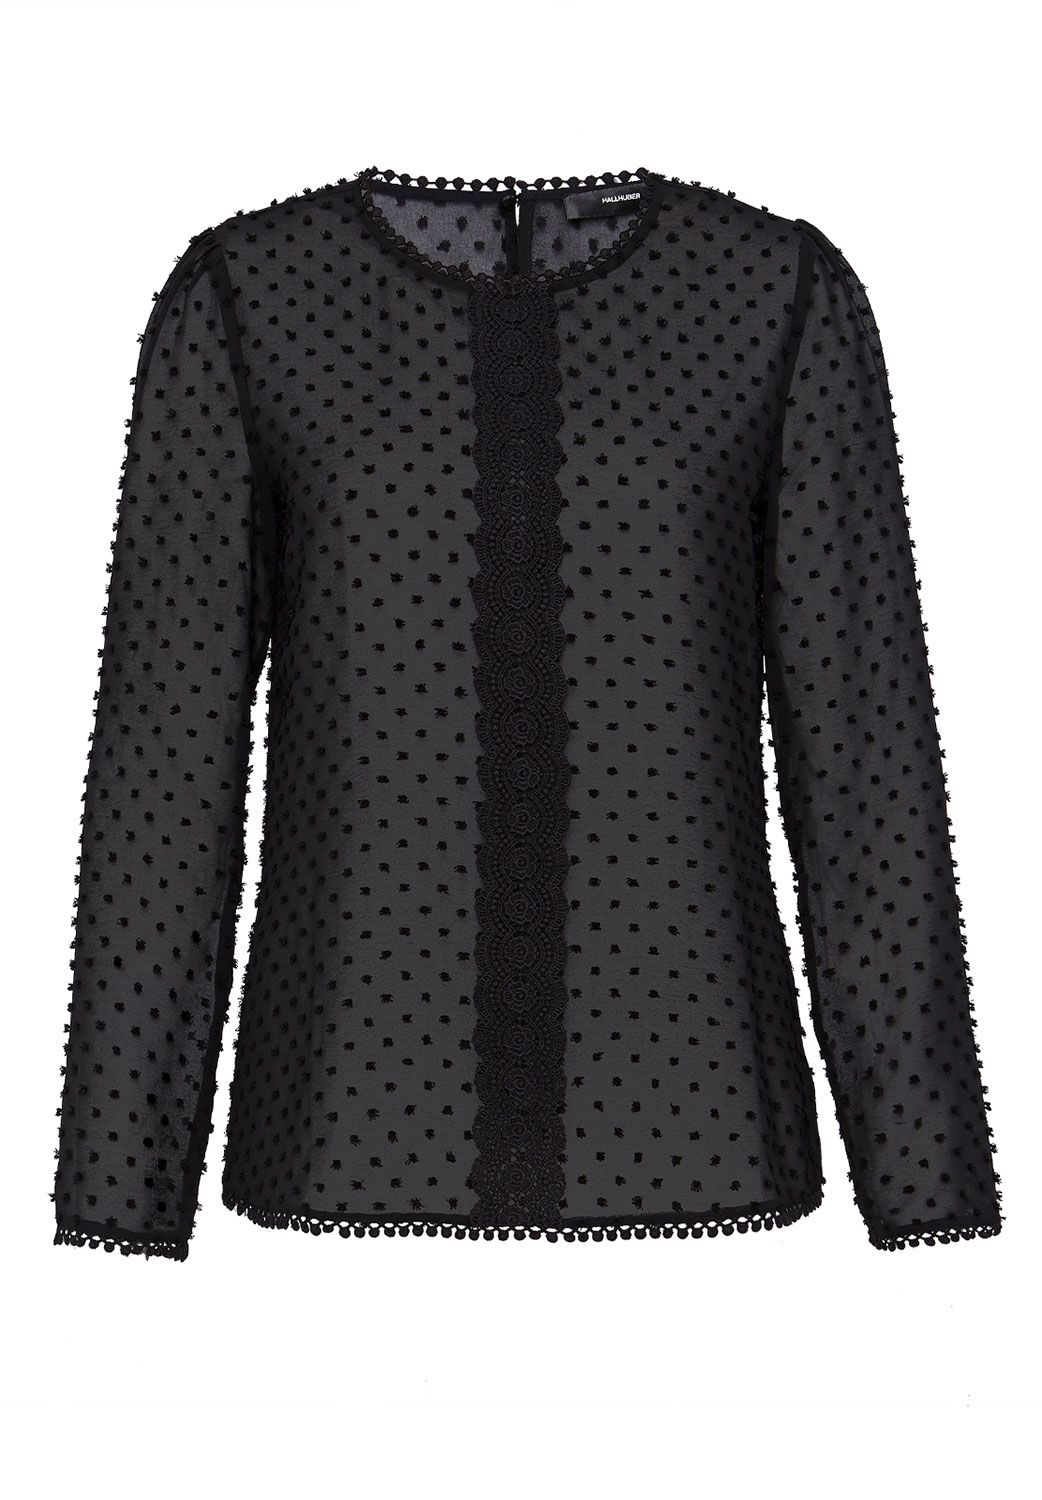 Hallhuber Hallhuber Blouse with embroidered polka dots, Black